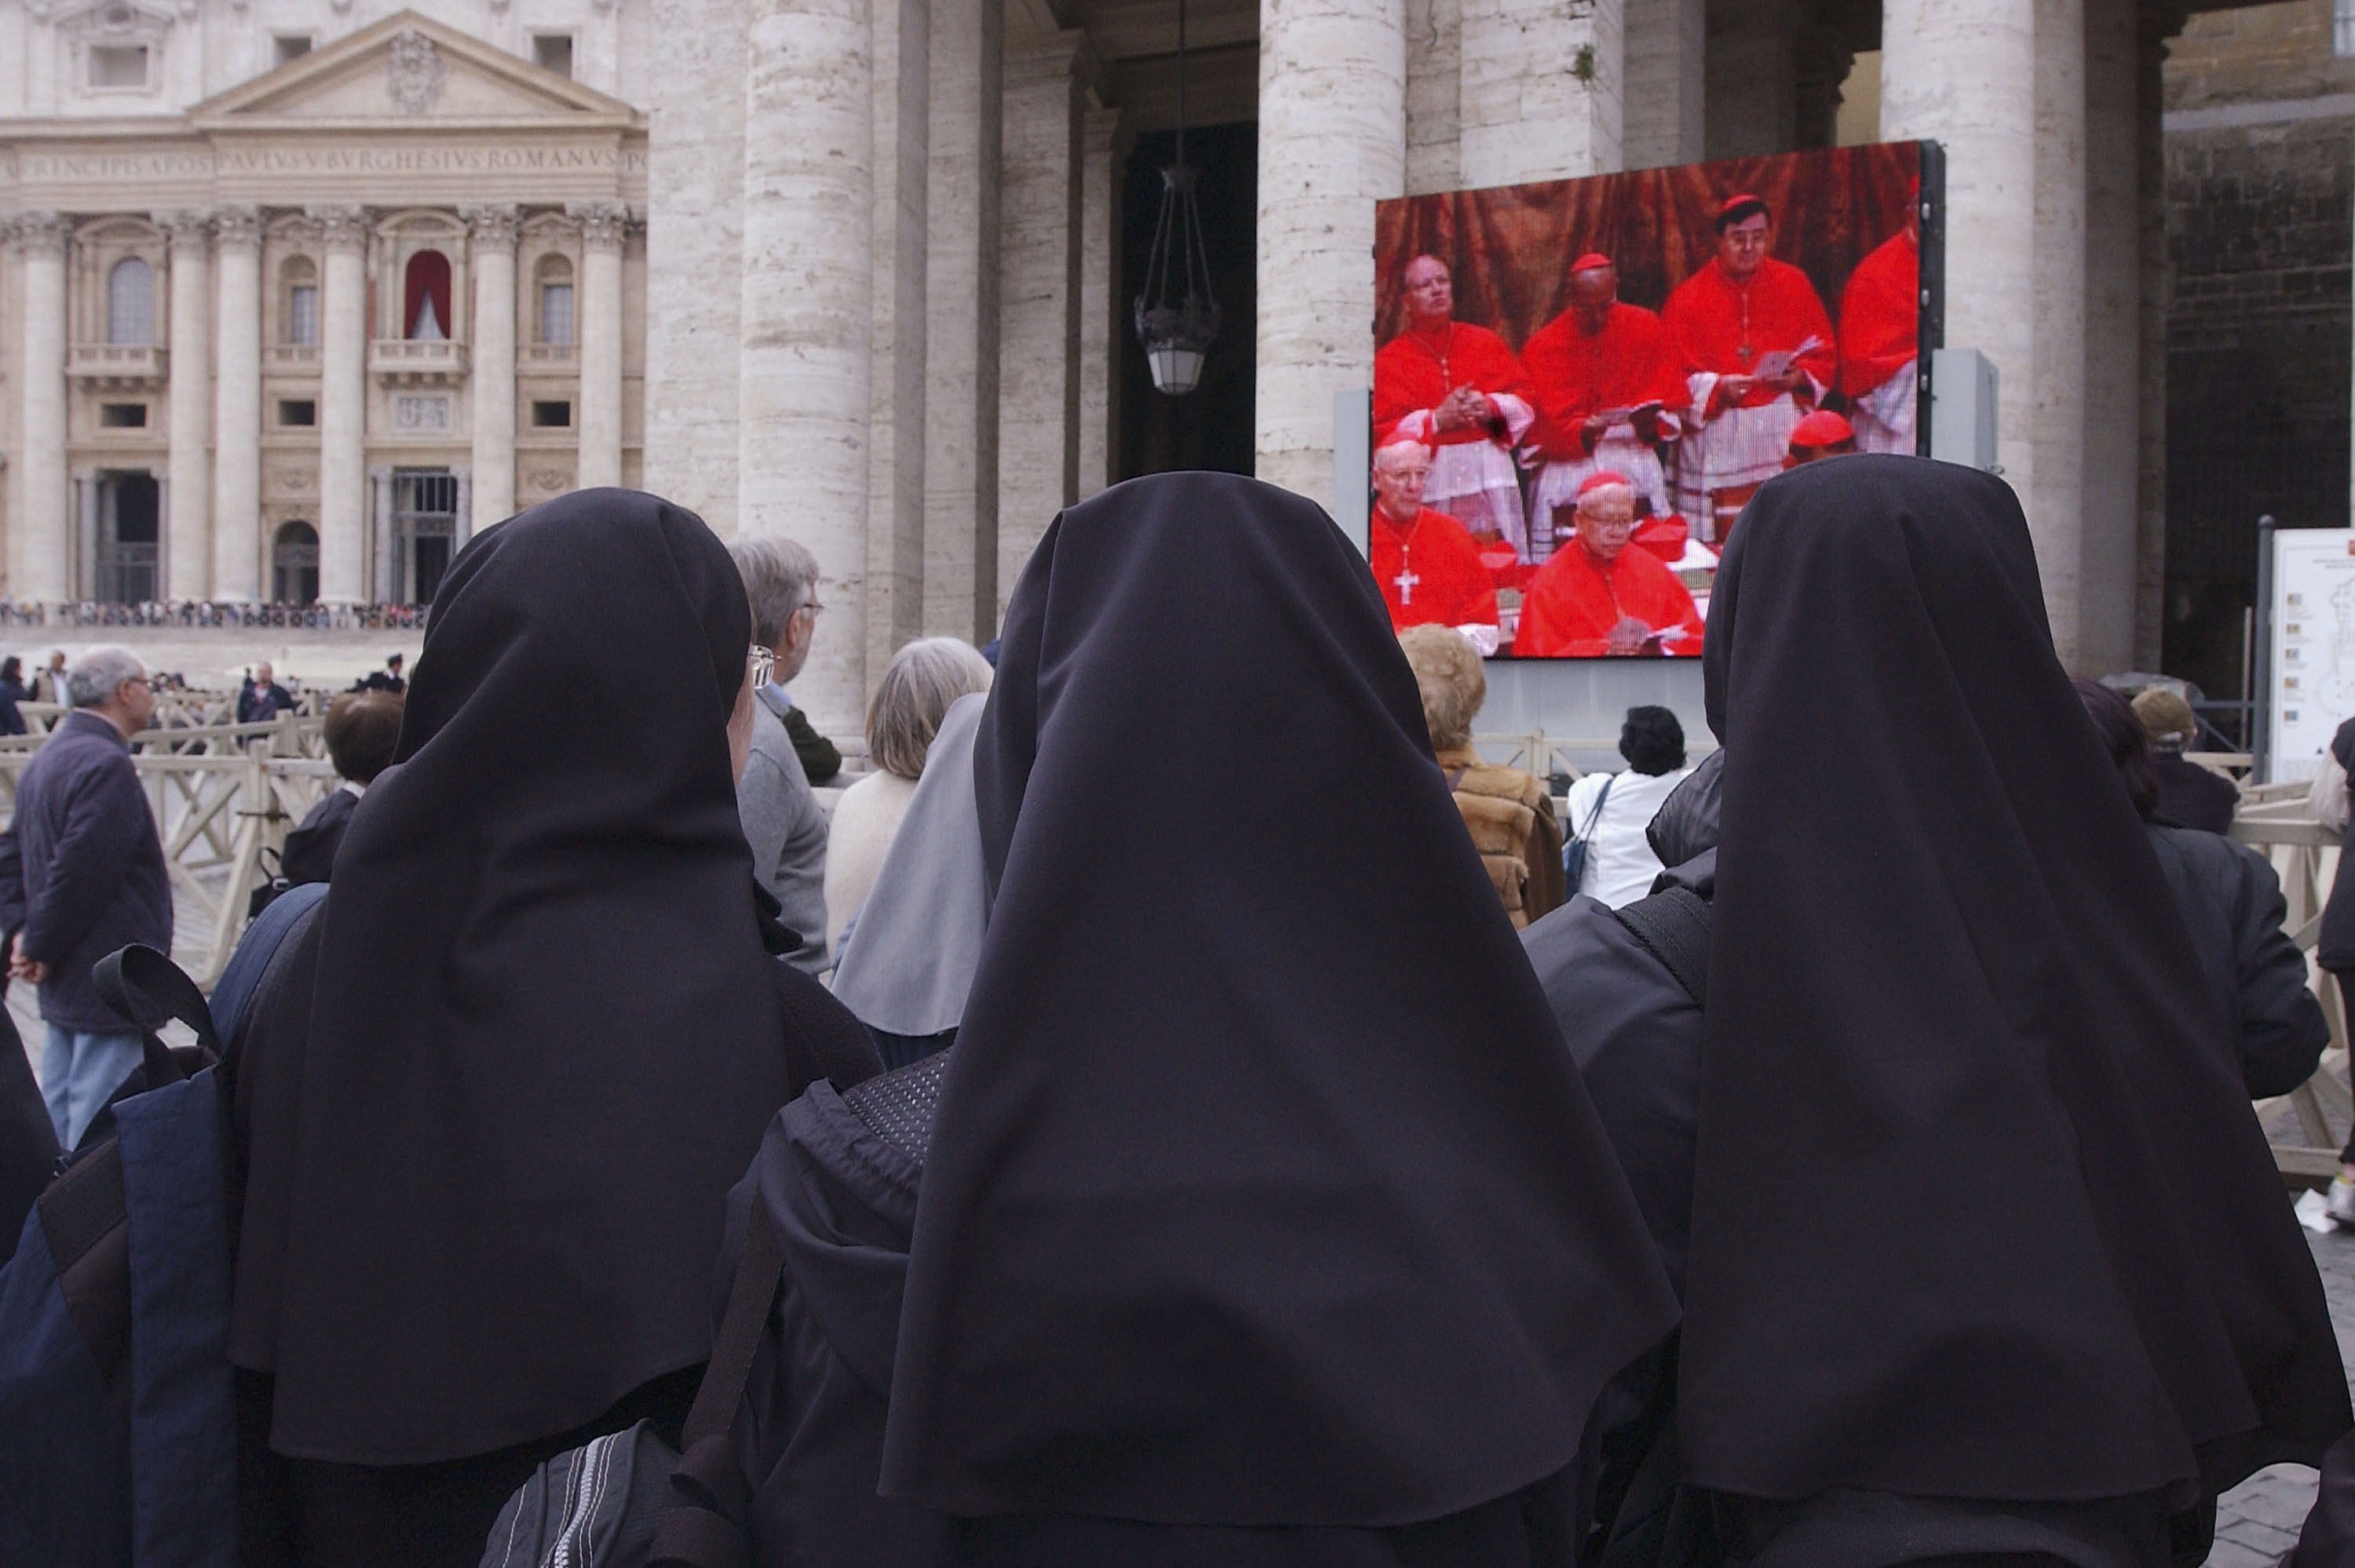 Nuns outside the Vatican watch a telecast of cardinals deliberating at the Papal Conclave to elect a new pope in 2005. The government of Vatican City, an ecclesiastical state, is overseen by the pope of the Roman Catholic church, who can only be elected by male cardinals.